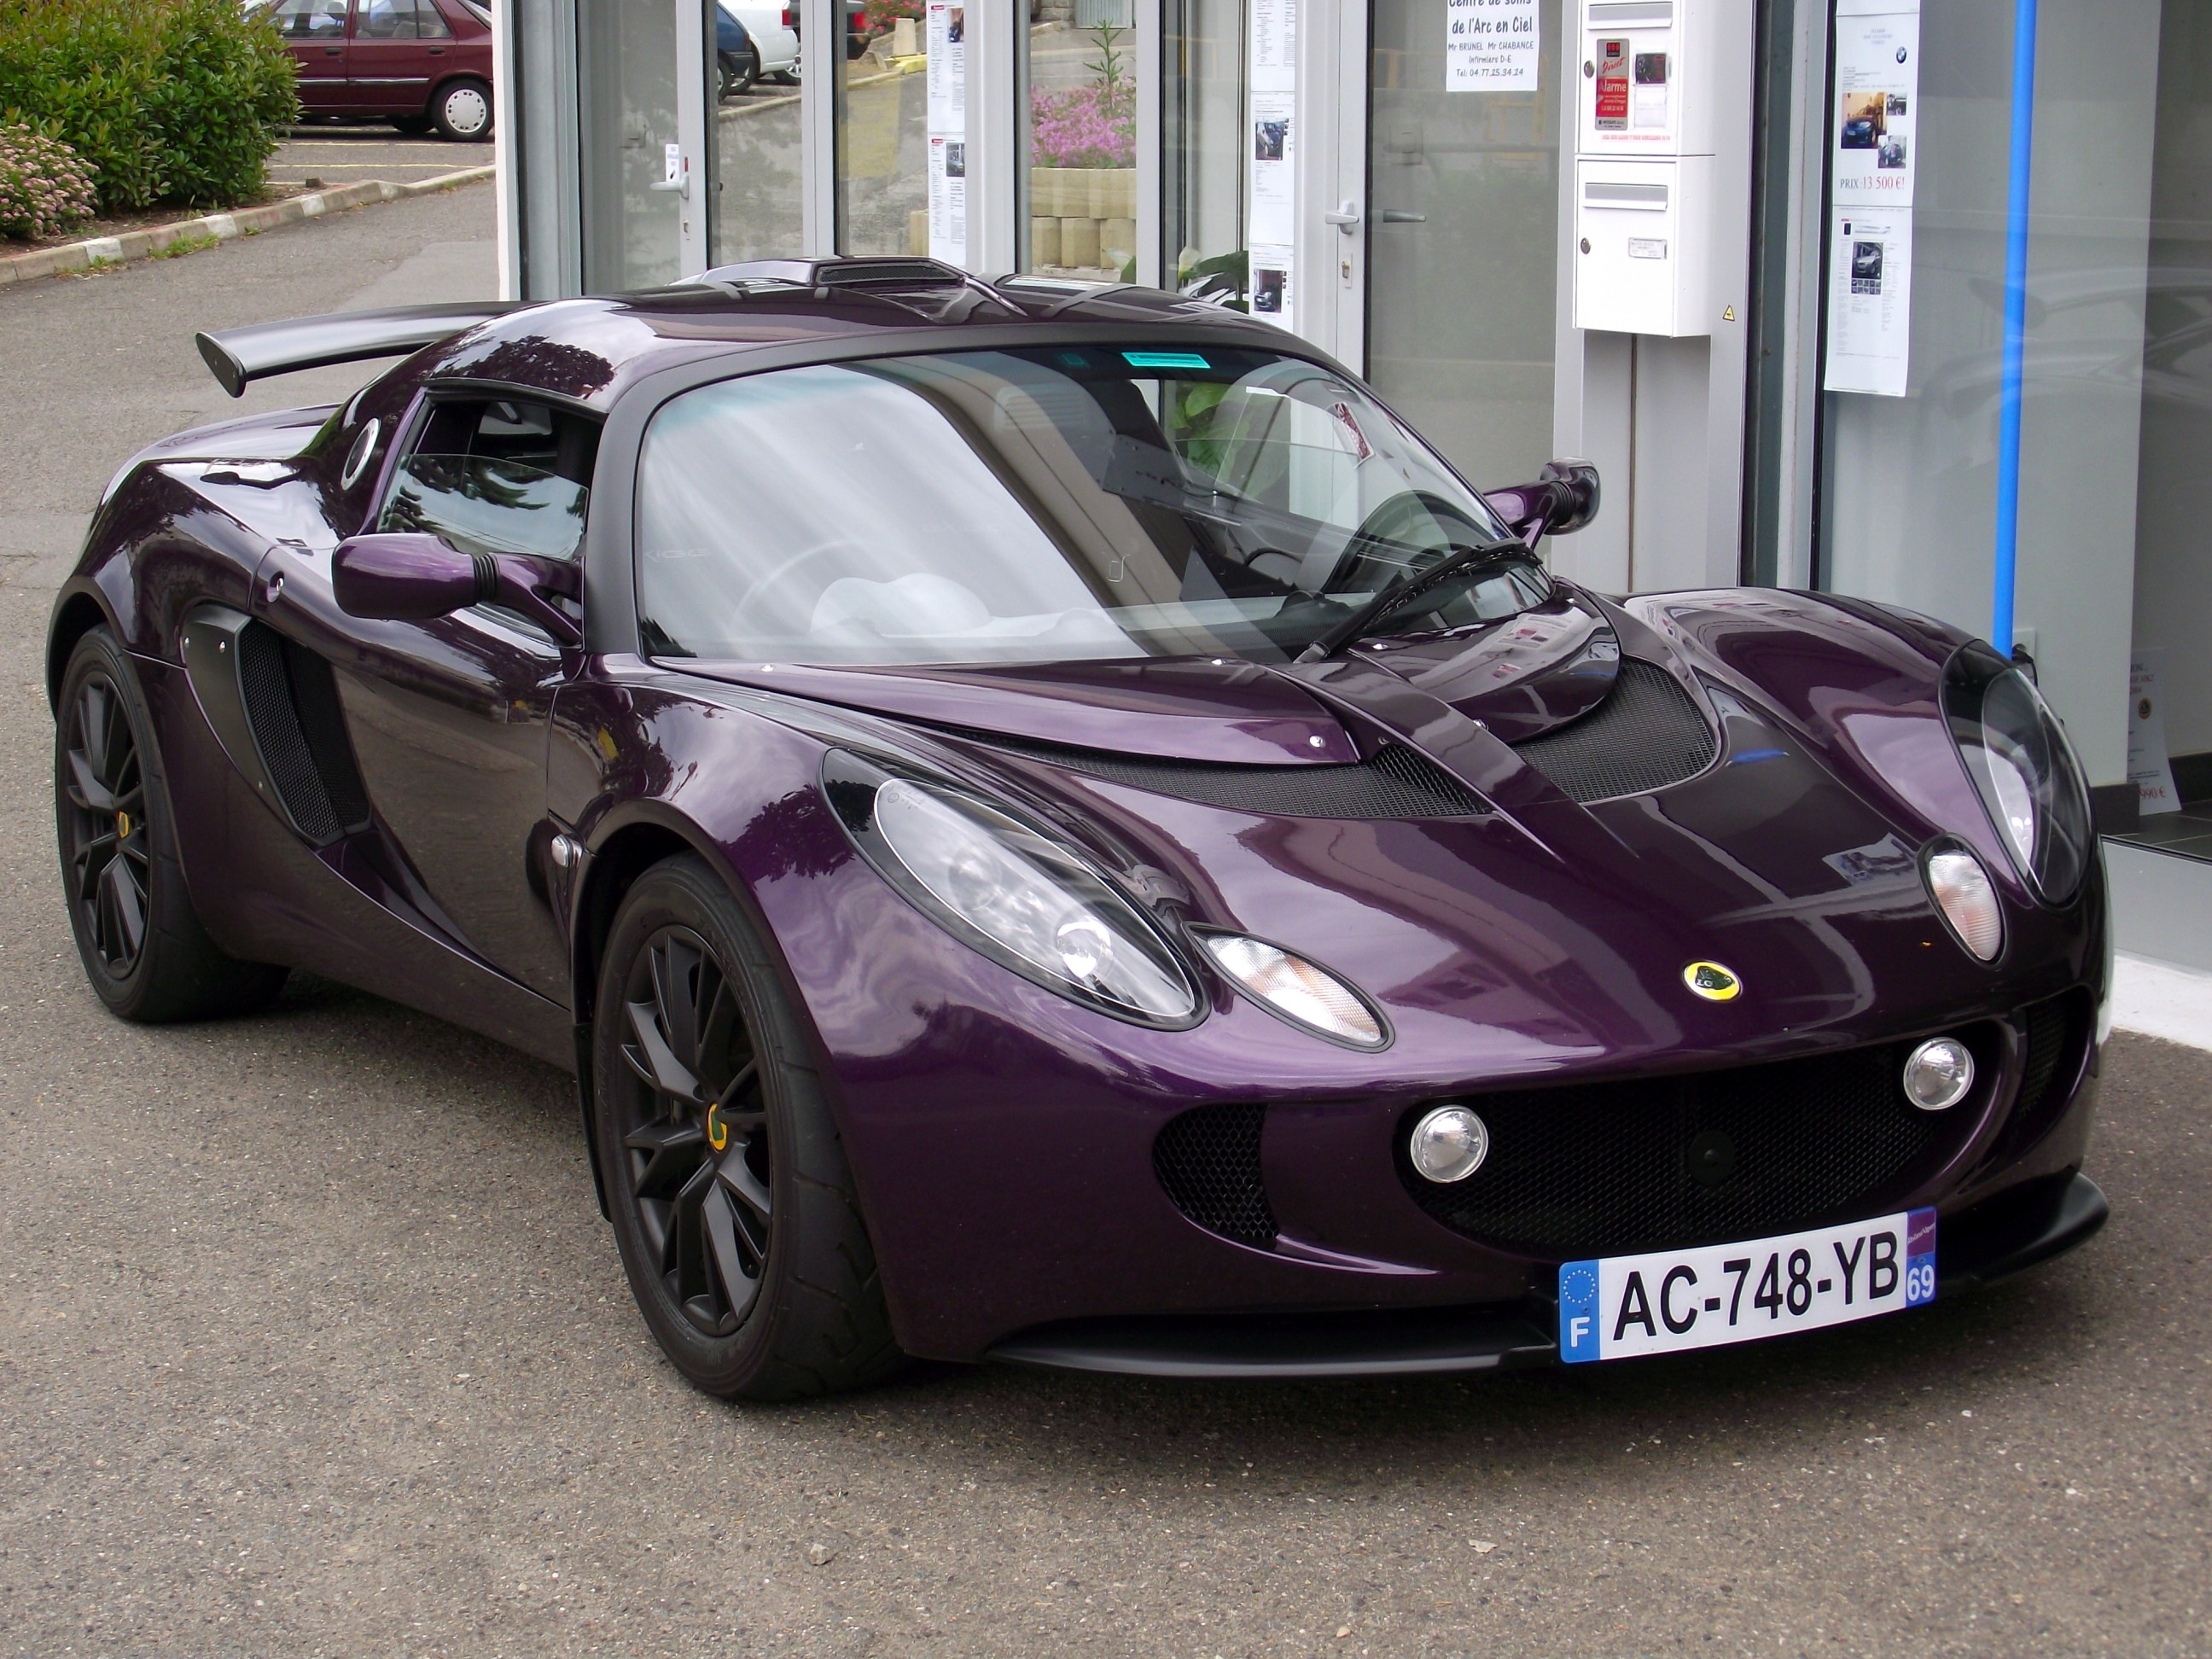 attention vol lotus exige aubergine immat 748 yb 69 auto titre. Black Bedroom Furniture Sets. Home Design Ideas